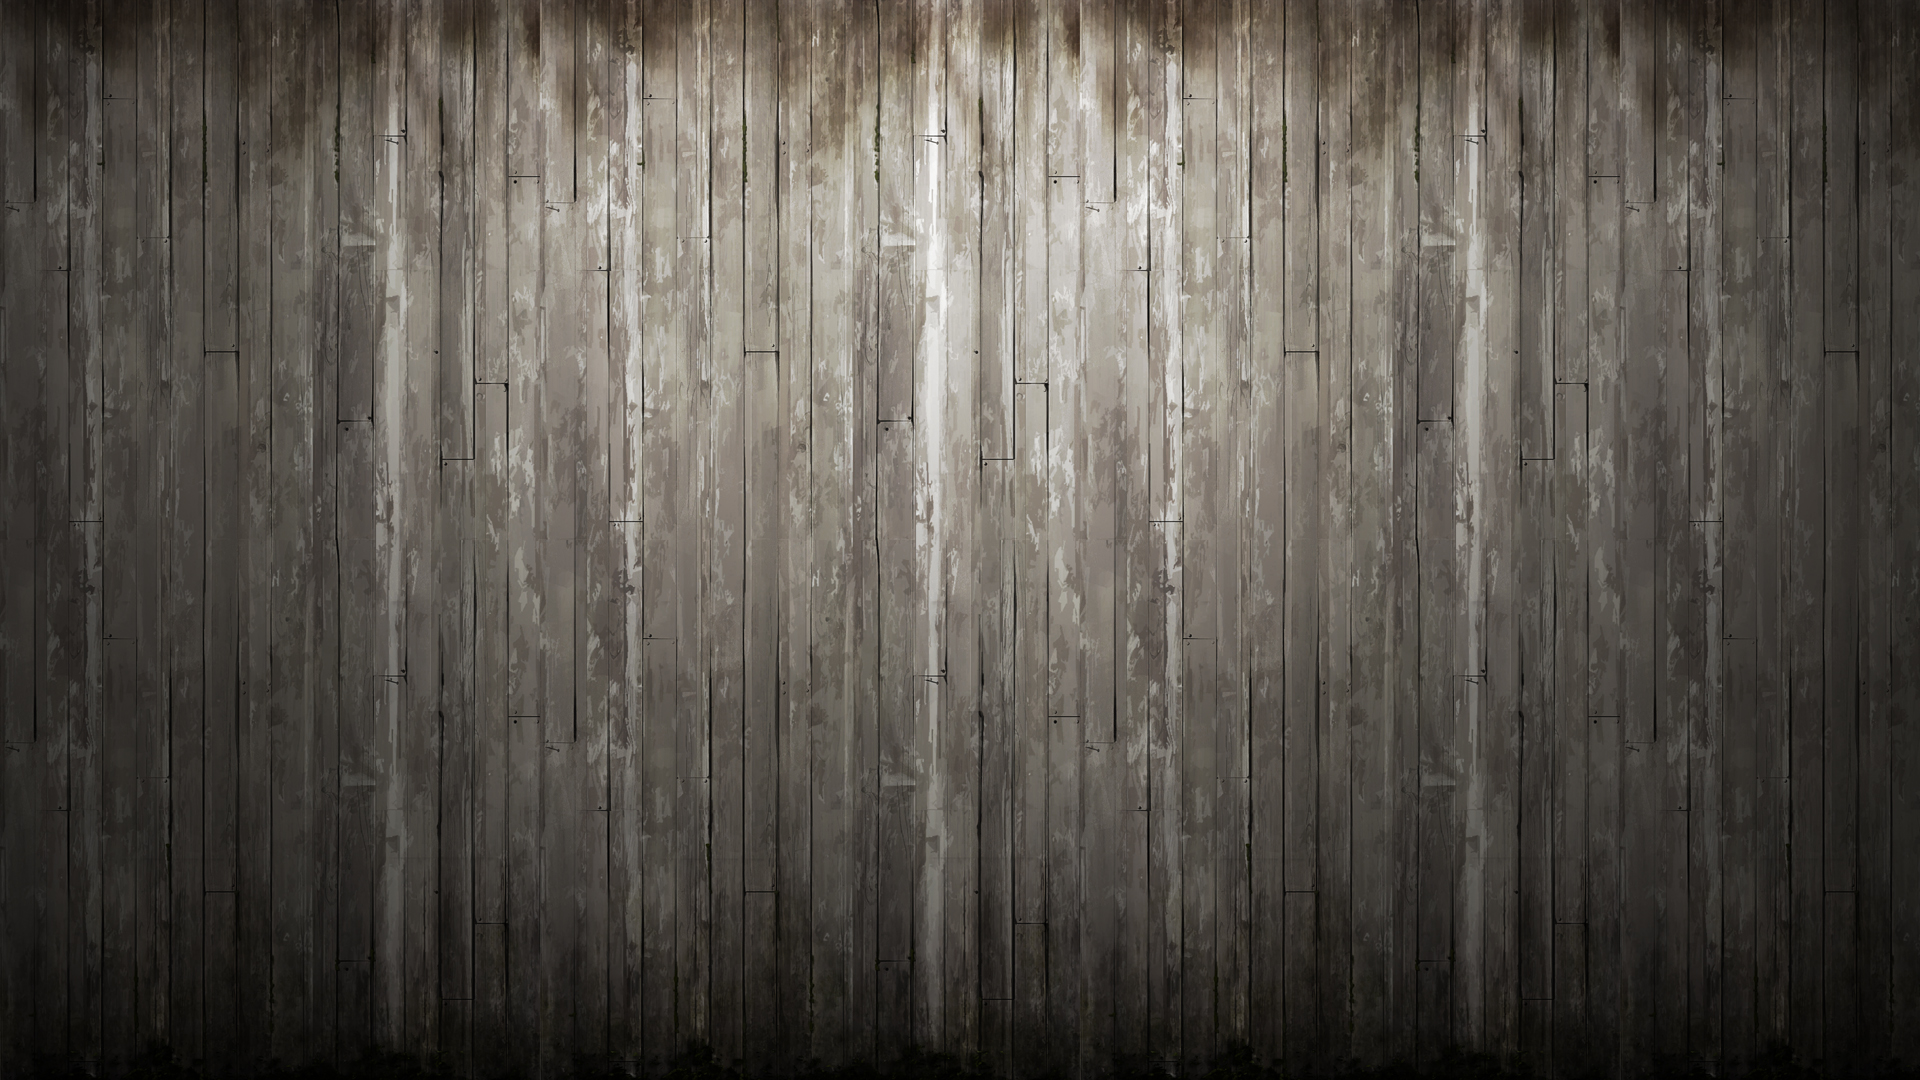 Hd-Wood-Background-wallpaper-wpc9005974